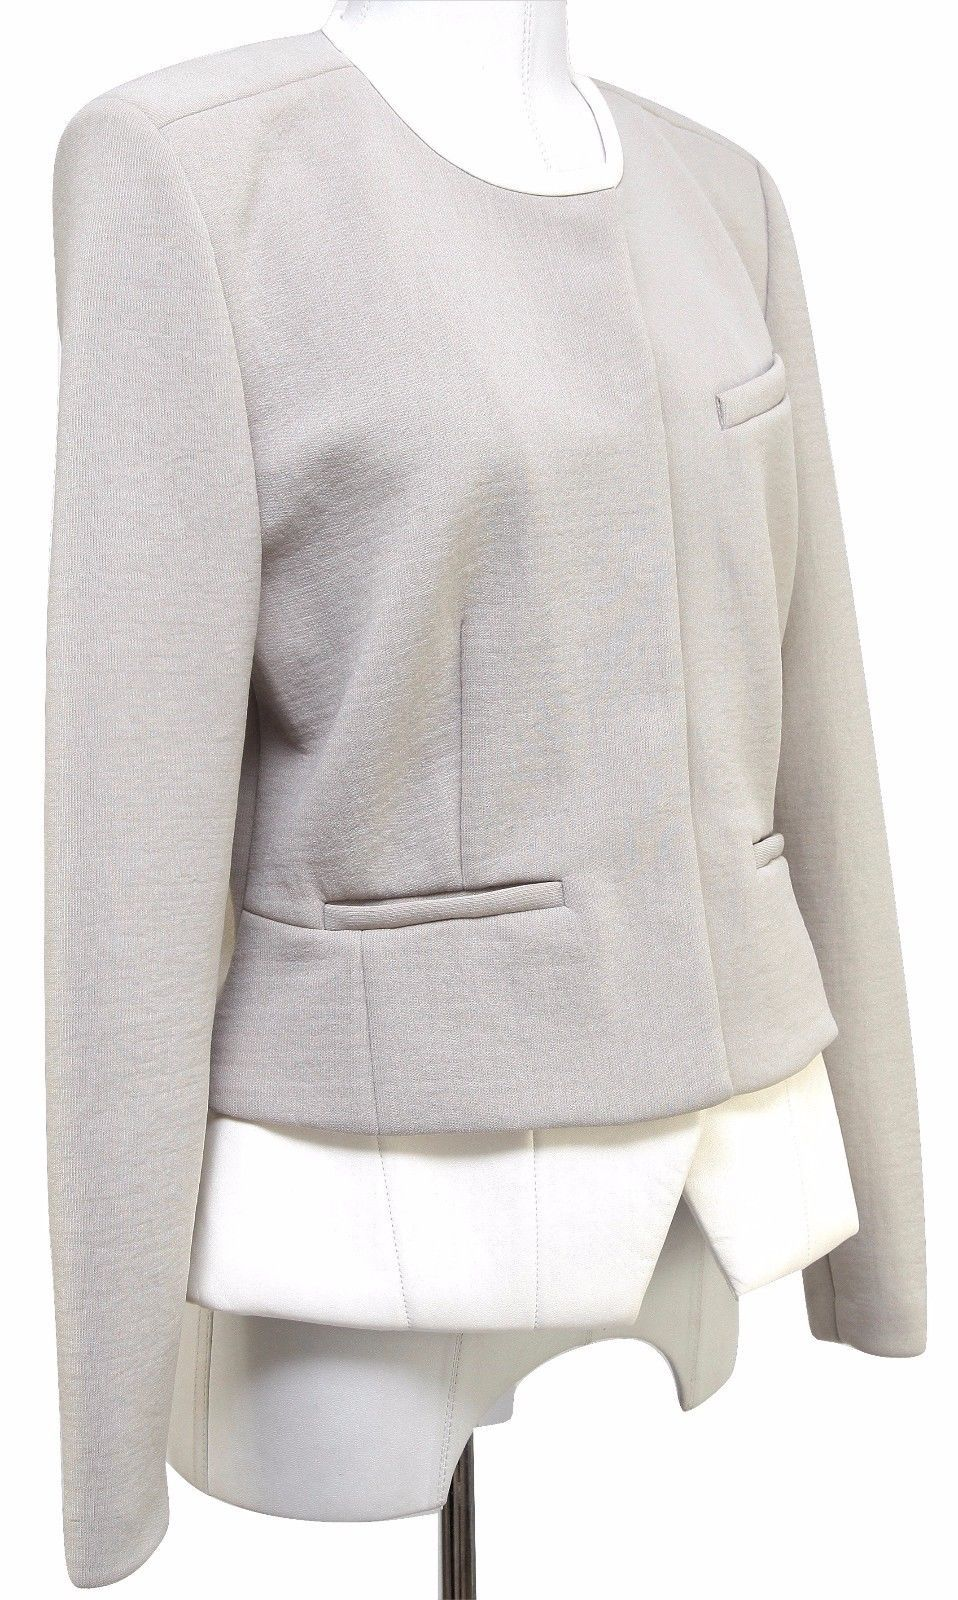 IRO CLYDE Jacket Coat Leather Beige Ivory Ecru Long Sleeve 42